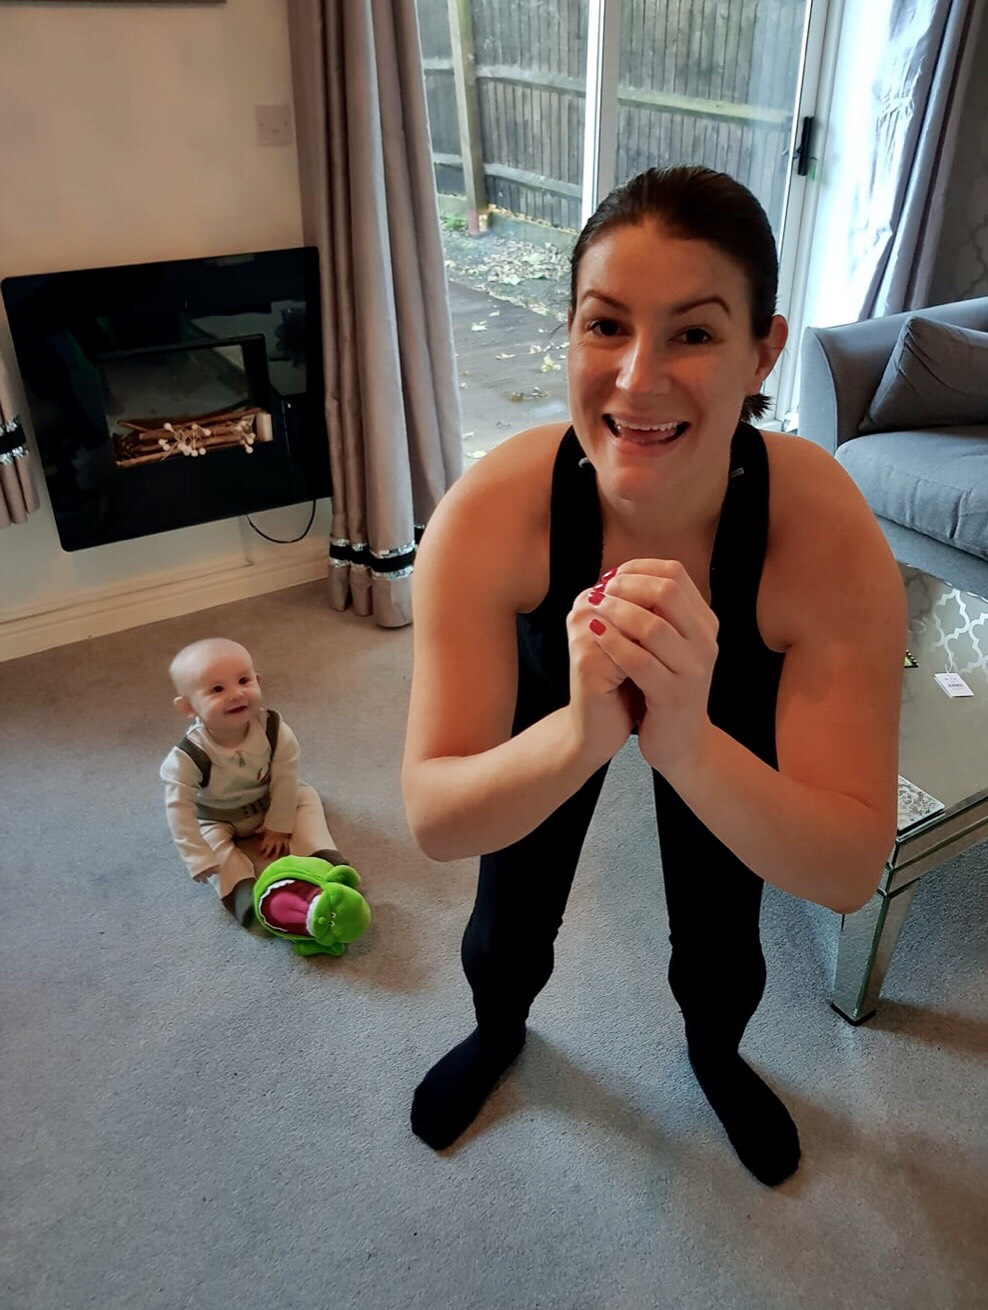 Mum doing squat next to baby